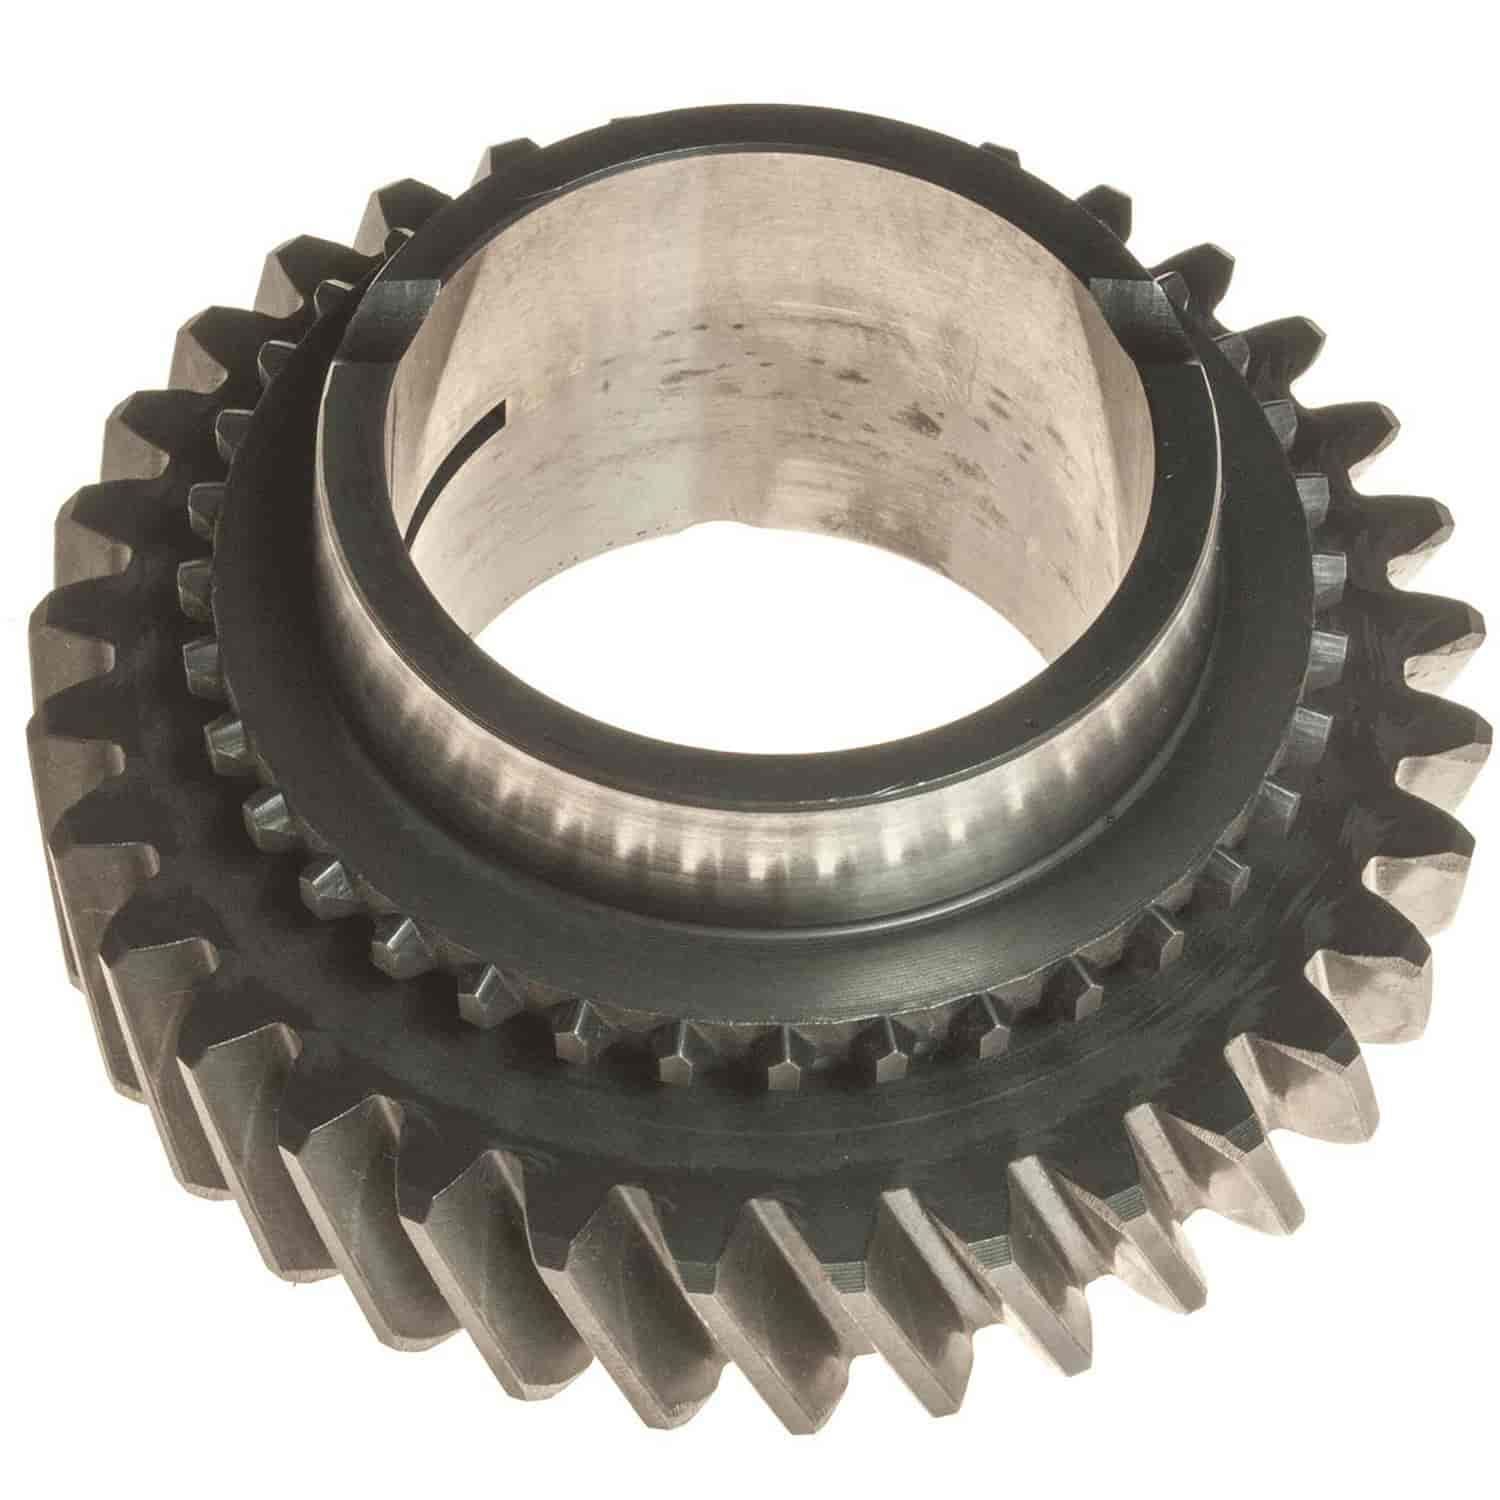 Richmond Gear 2371833 - Richmond 5-Speed Street Transmission Components